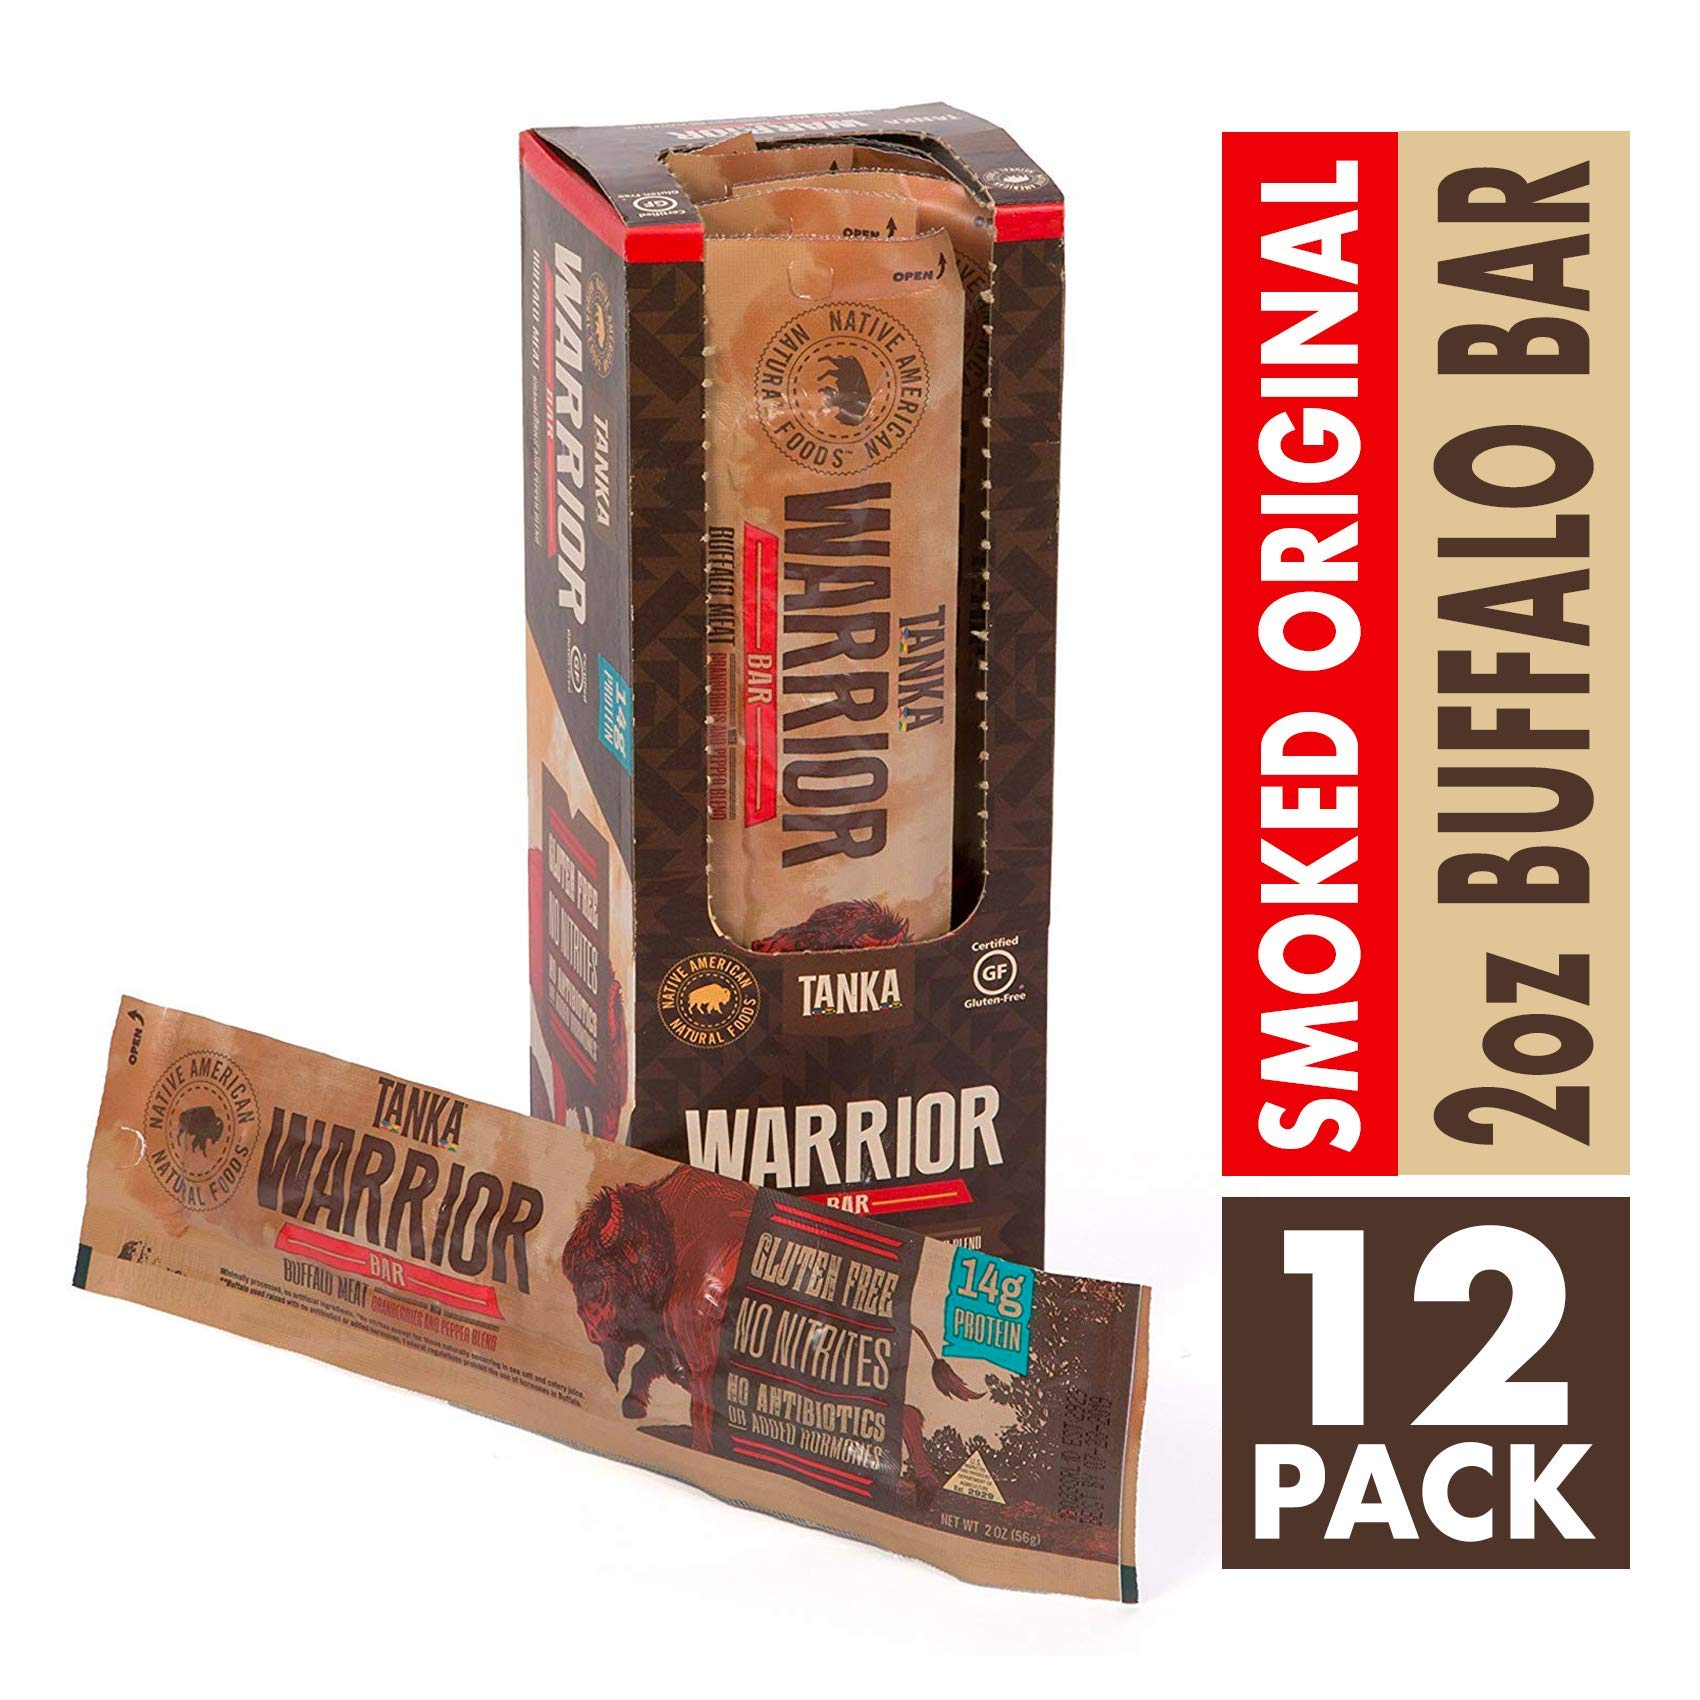 Bison Pemmican Meat Bar with Buffalo and Cranberries by Tanka, Gluten Free, Beef Jerky Alternative, Slow Smoked Original, 2 Ounce Bar, Pack of 12